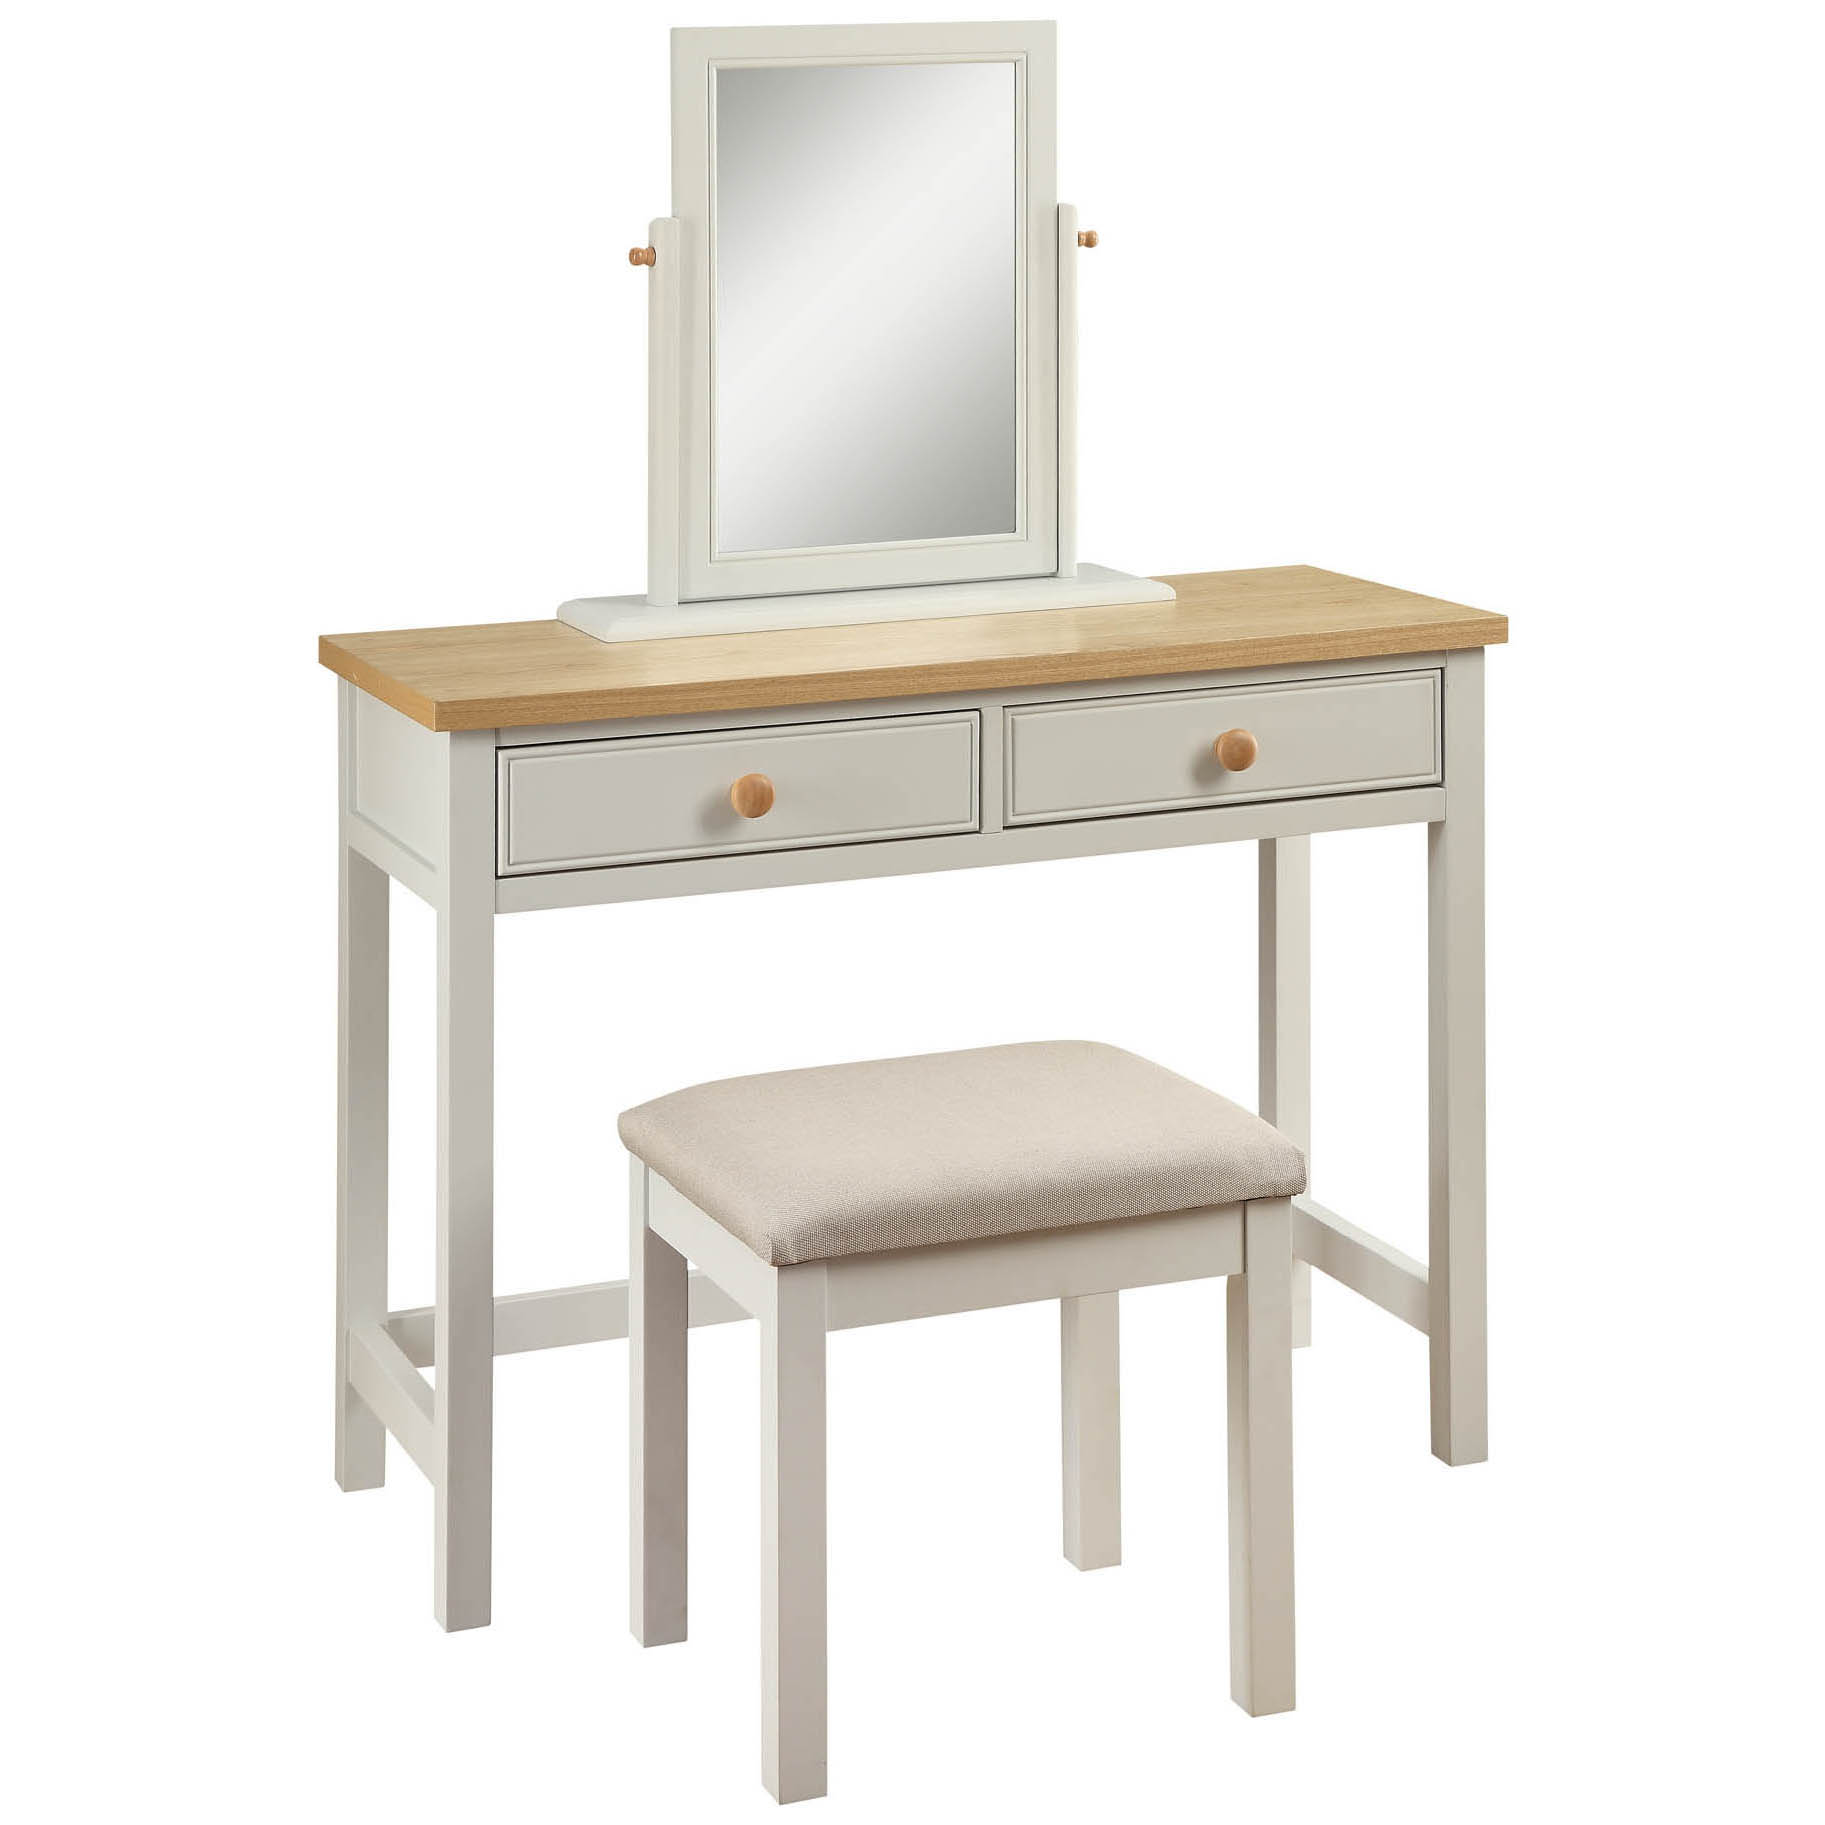 Dove-Grey-amp-Real-Ash-Veneer-2-Drawer-Dressing-Table-Desk-amp-Stool-with-Mirror